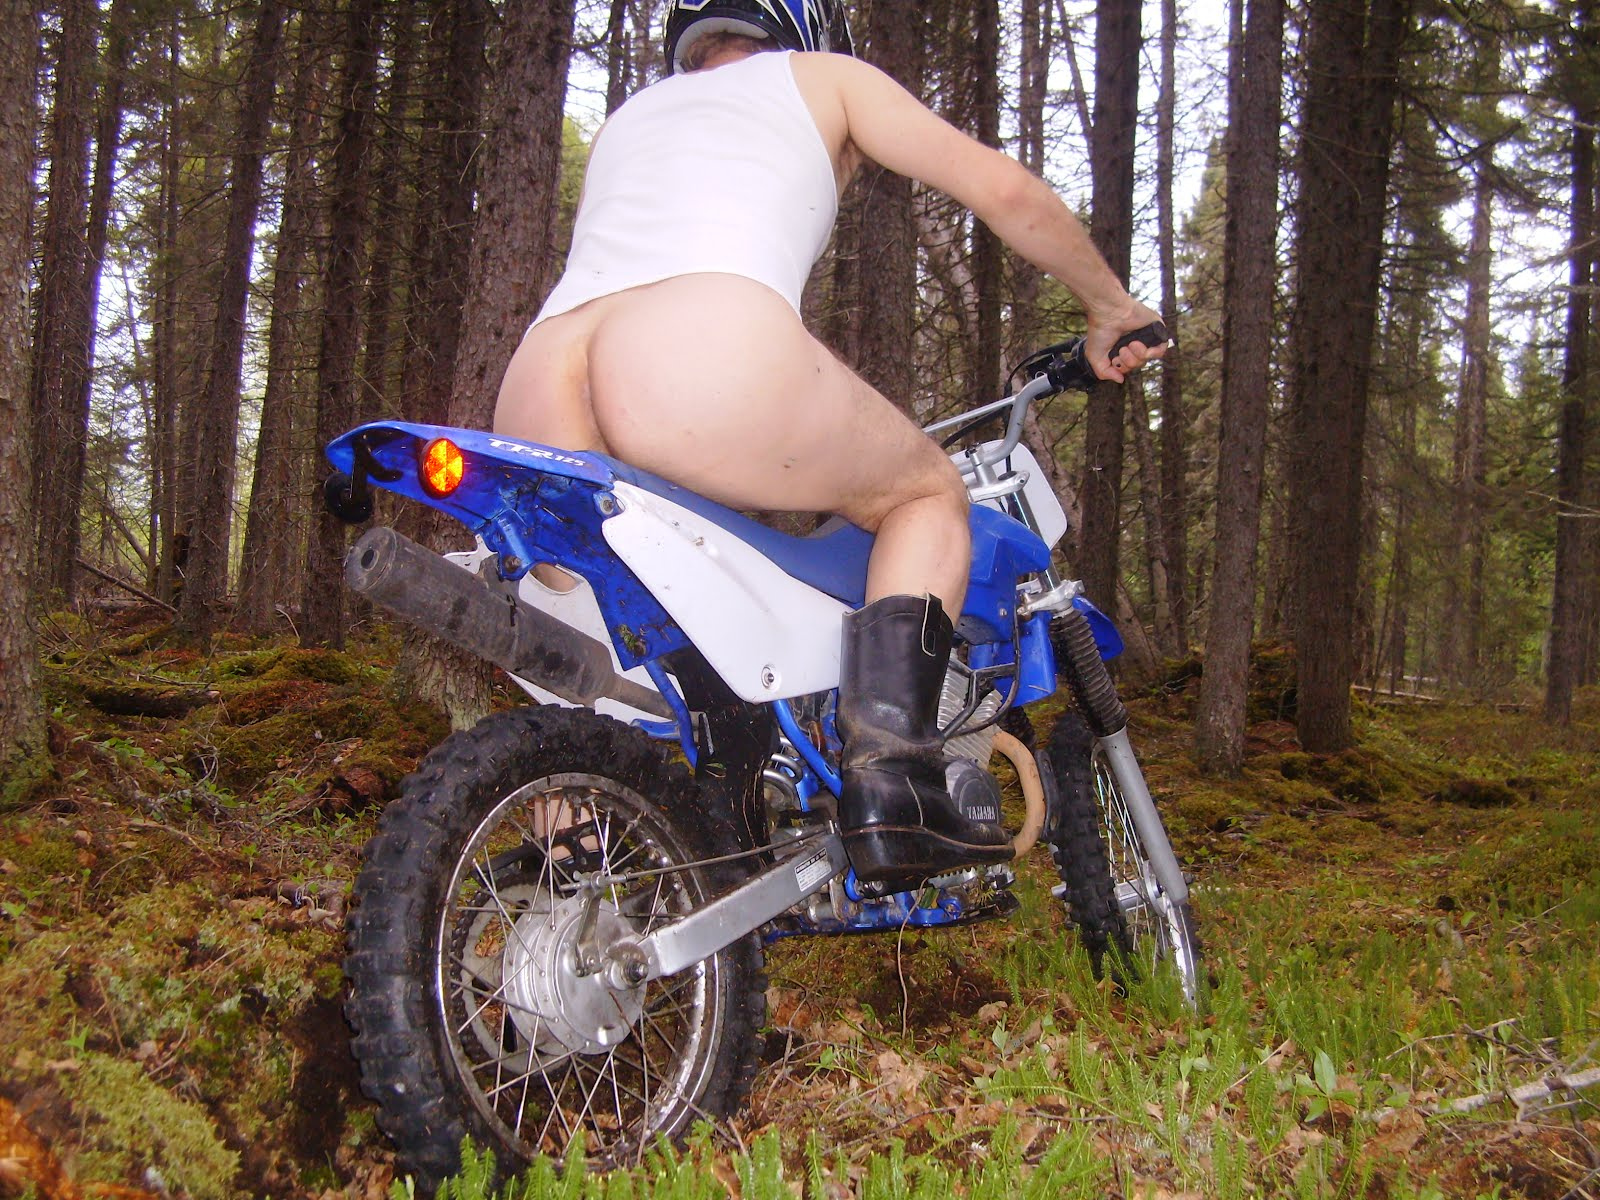 Not Dirtbike with girls nude think, that